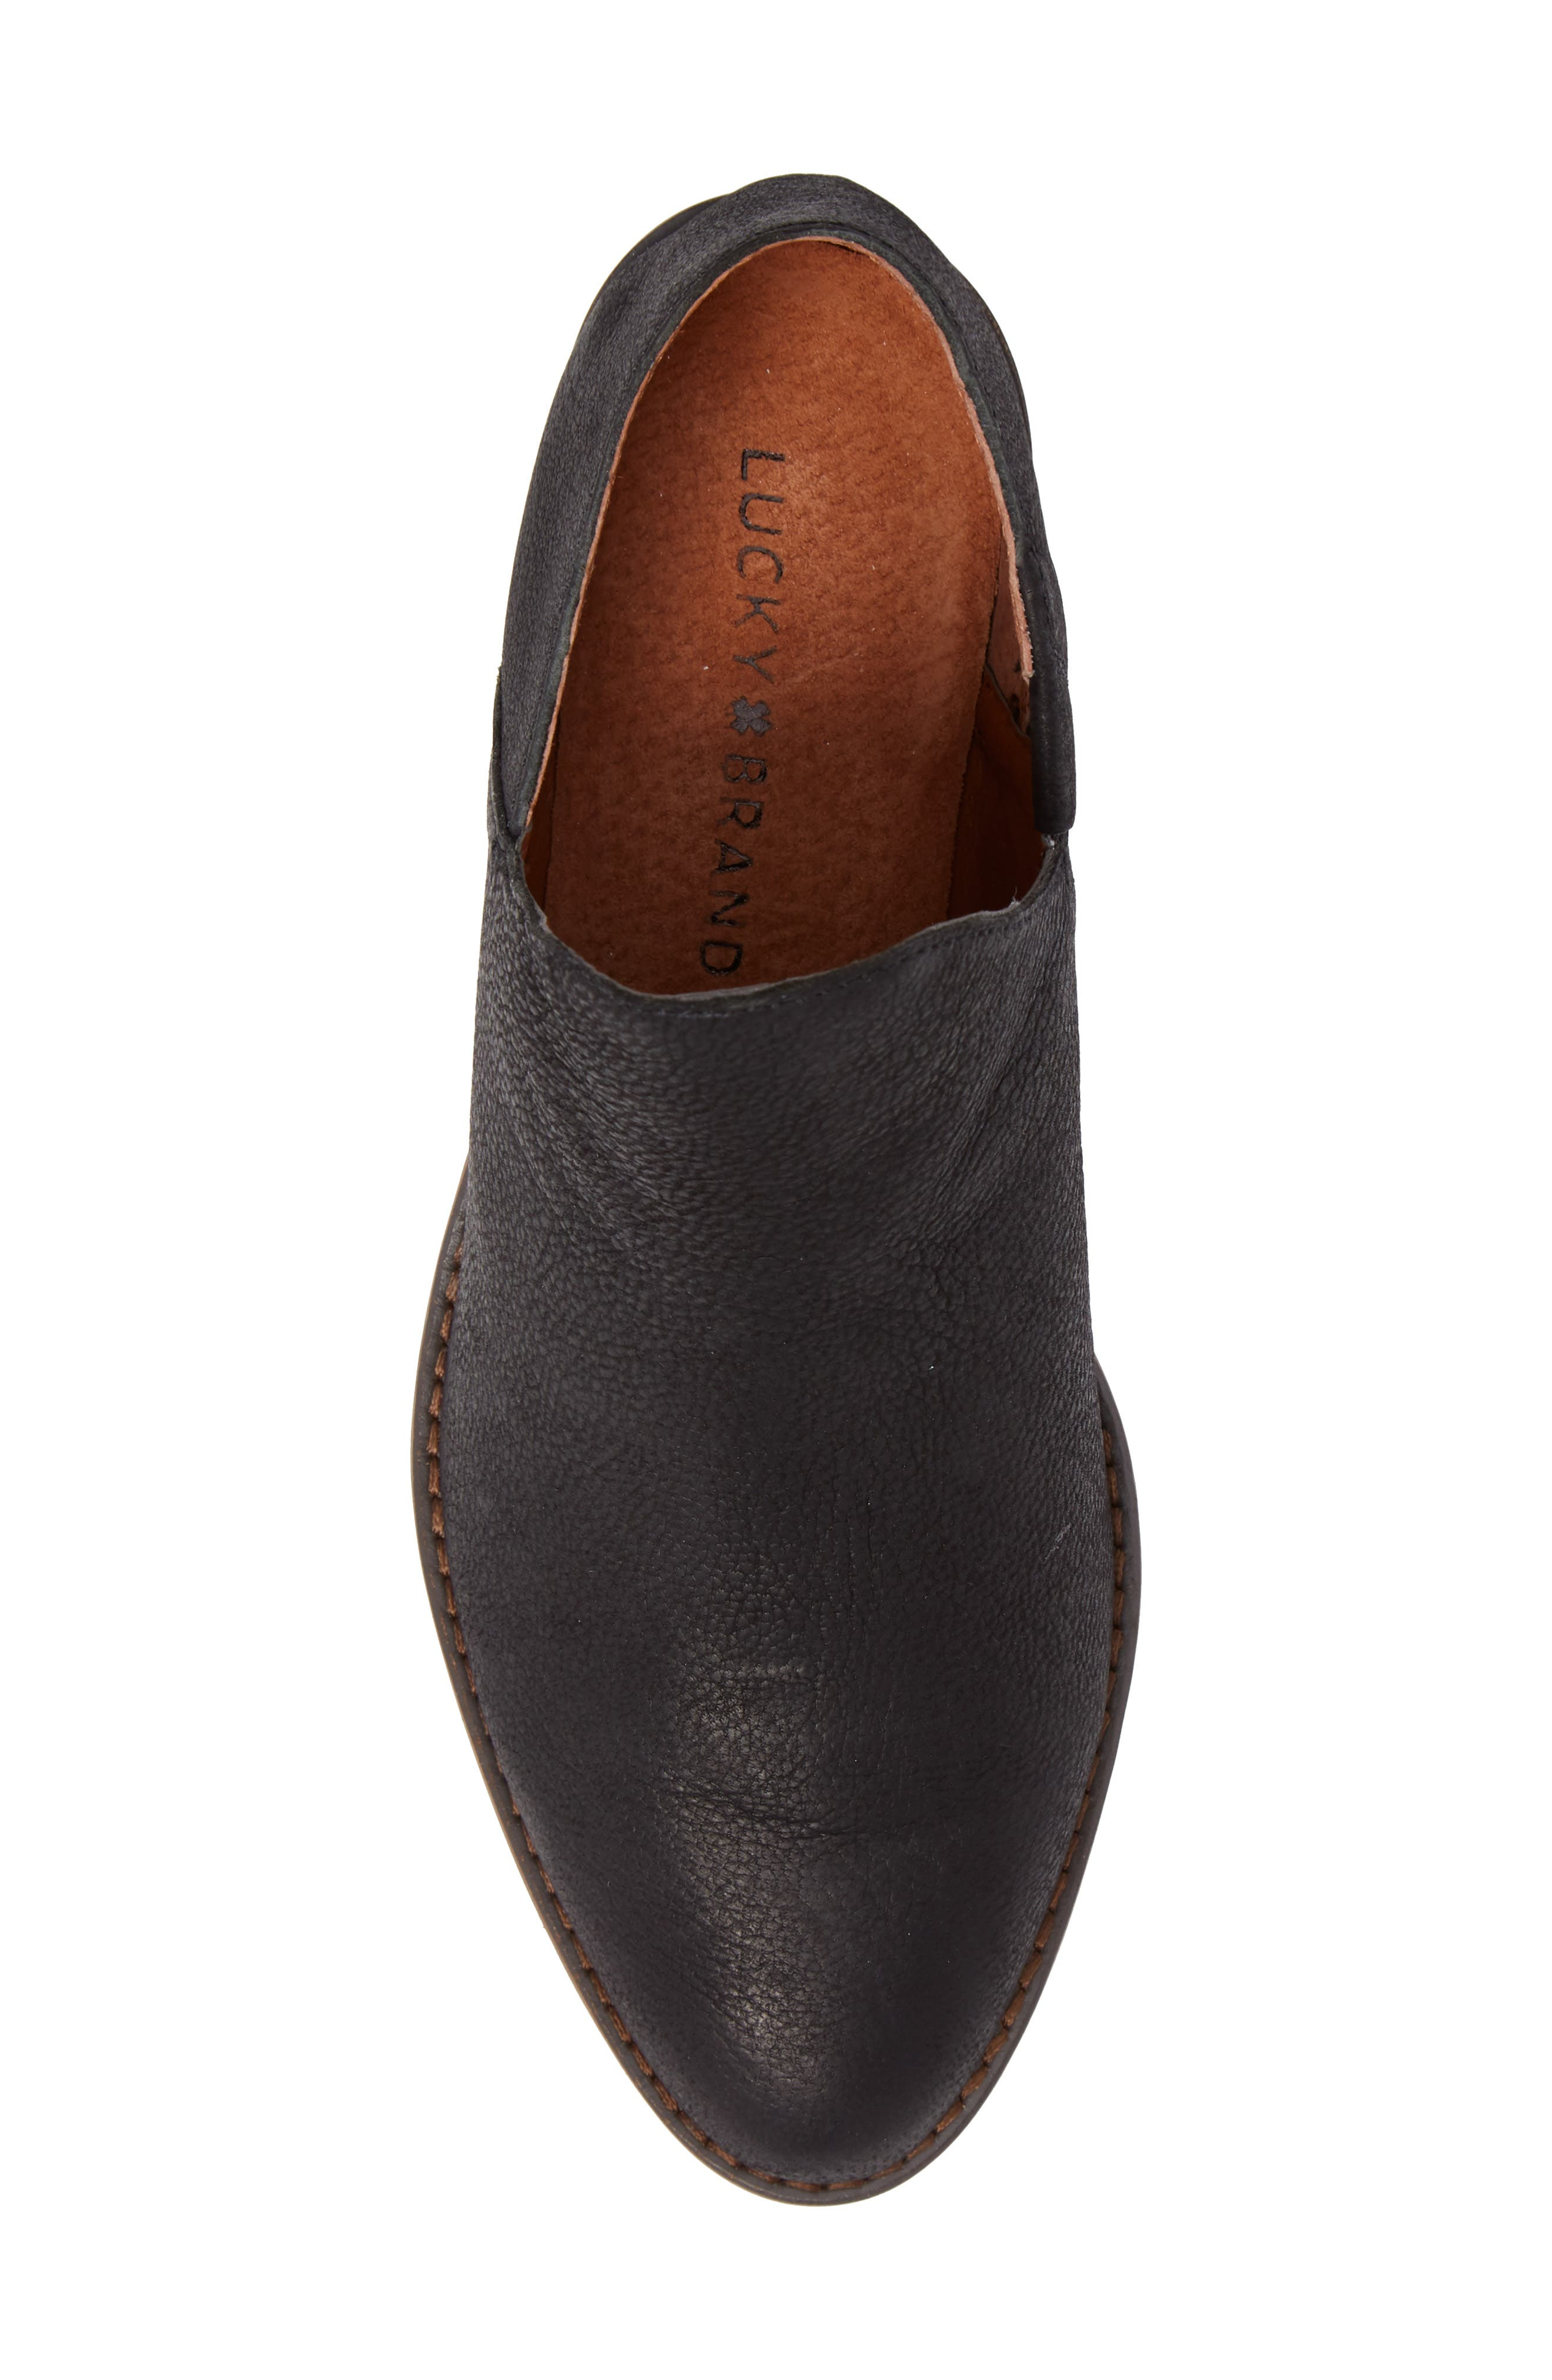 LUCKY BRAND,                             Fausst Bootie,                             Alternate thumbnail 5, color,                             001